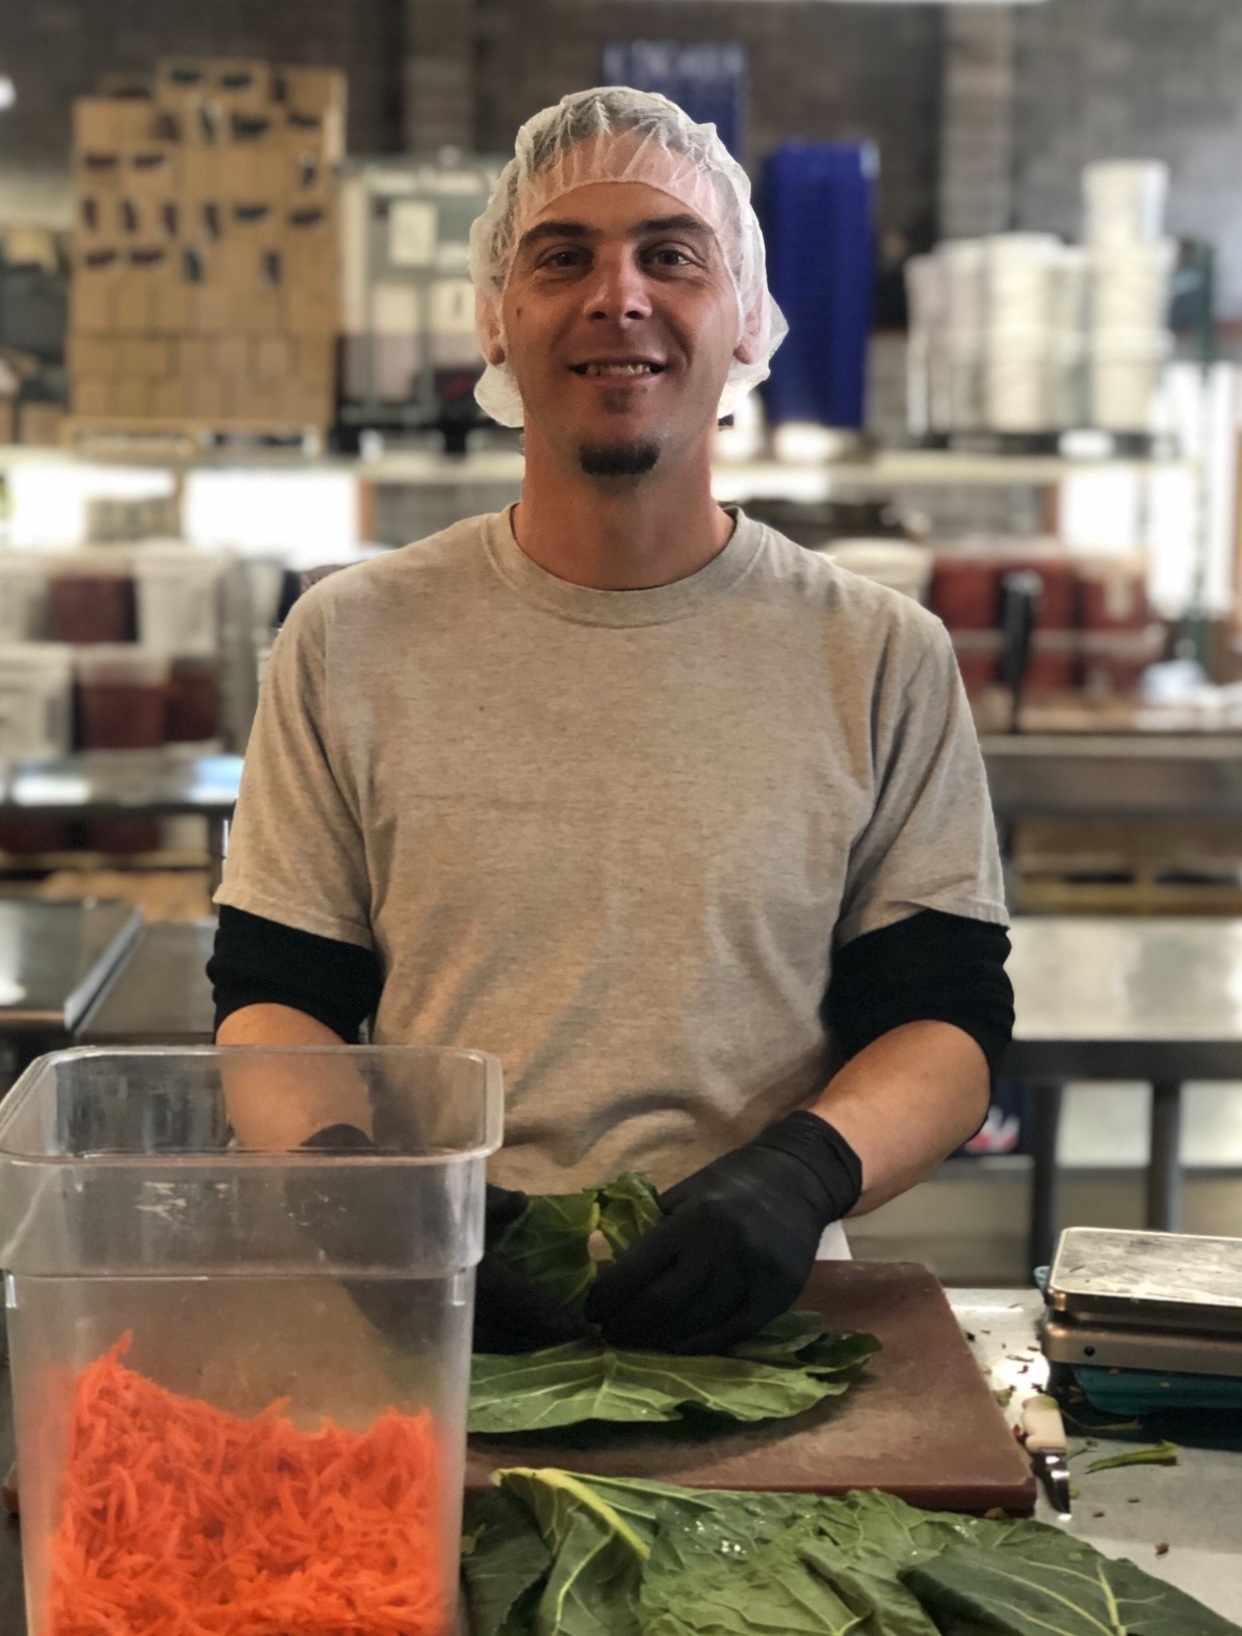 In the beginning - our founders created Tsunami Sushi, a high-quality vegan, organic product and served all over the Willamette Valley. In the past 4 years, we have evolved this small organic business by expanding Tsunami Sushi's product line to include collard green wraps. Now we are perfecting our recipes and expanding our vision to serve all conscious consumers in the Pacific Northwest.